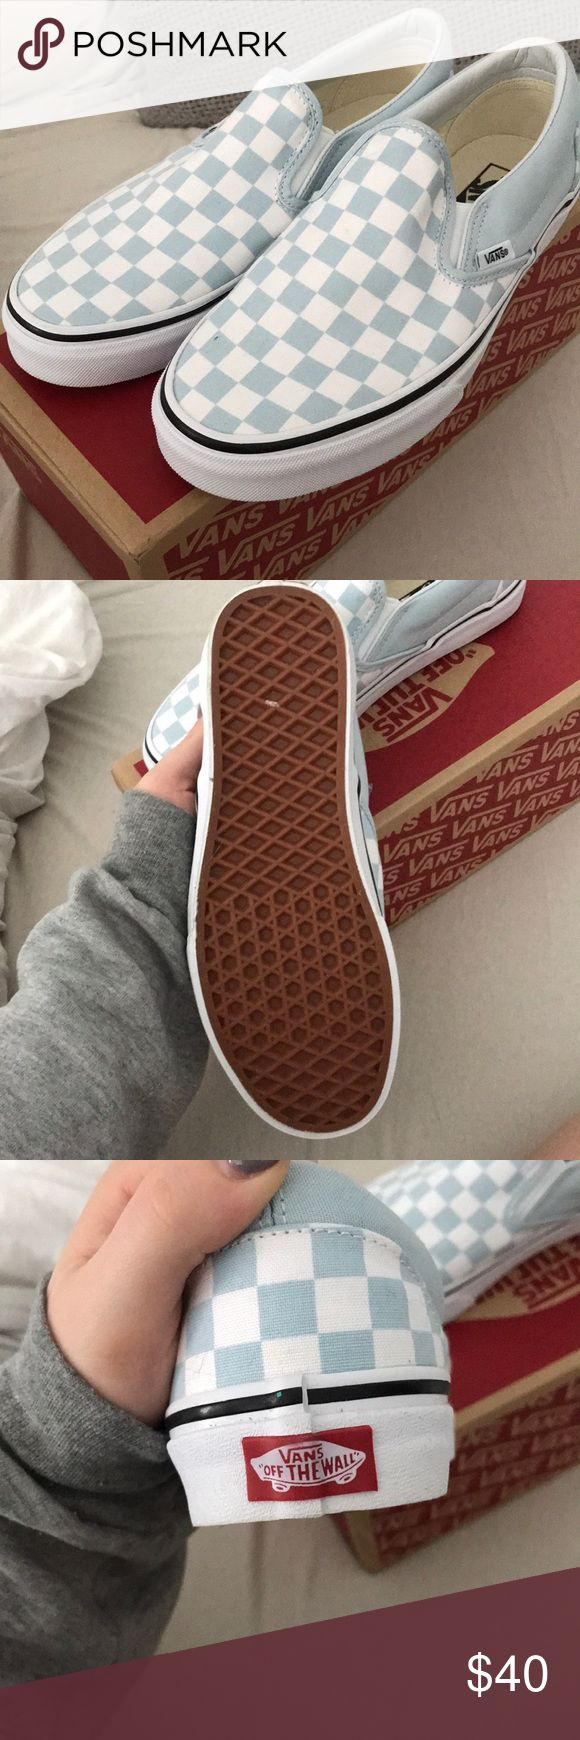 NWOT Baby Blue Vans never worn baby blue checkered slip on vans! i have the sticker still and box, just not attached! Vans Shoes Sneakers